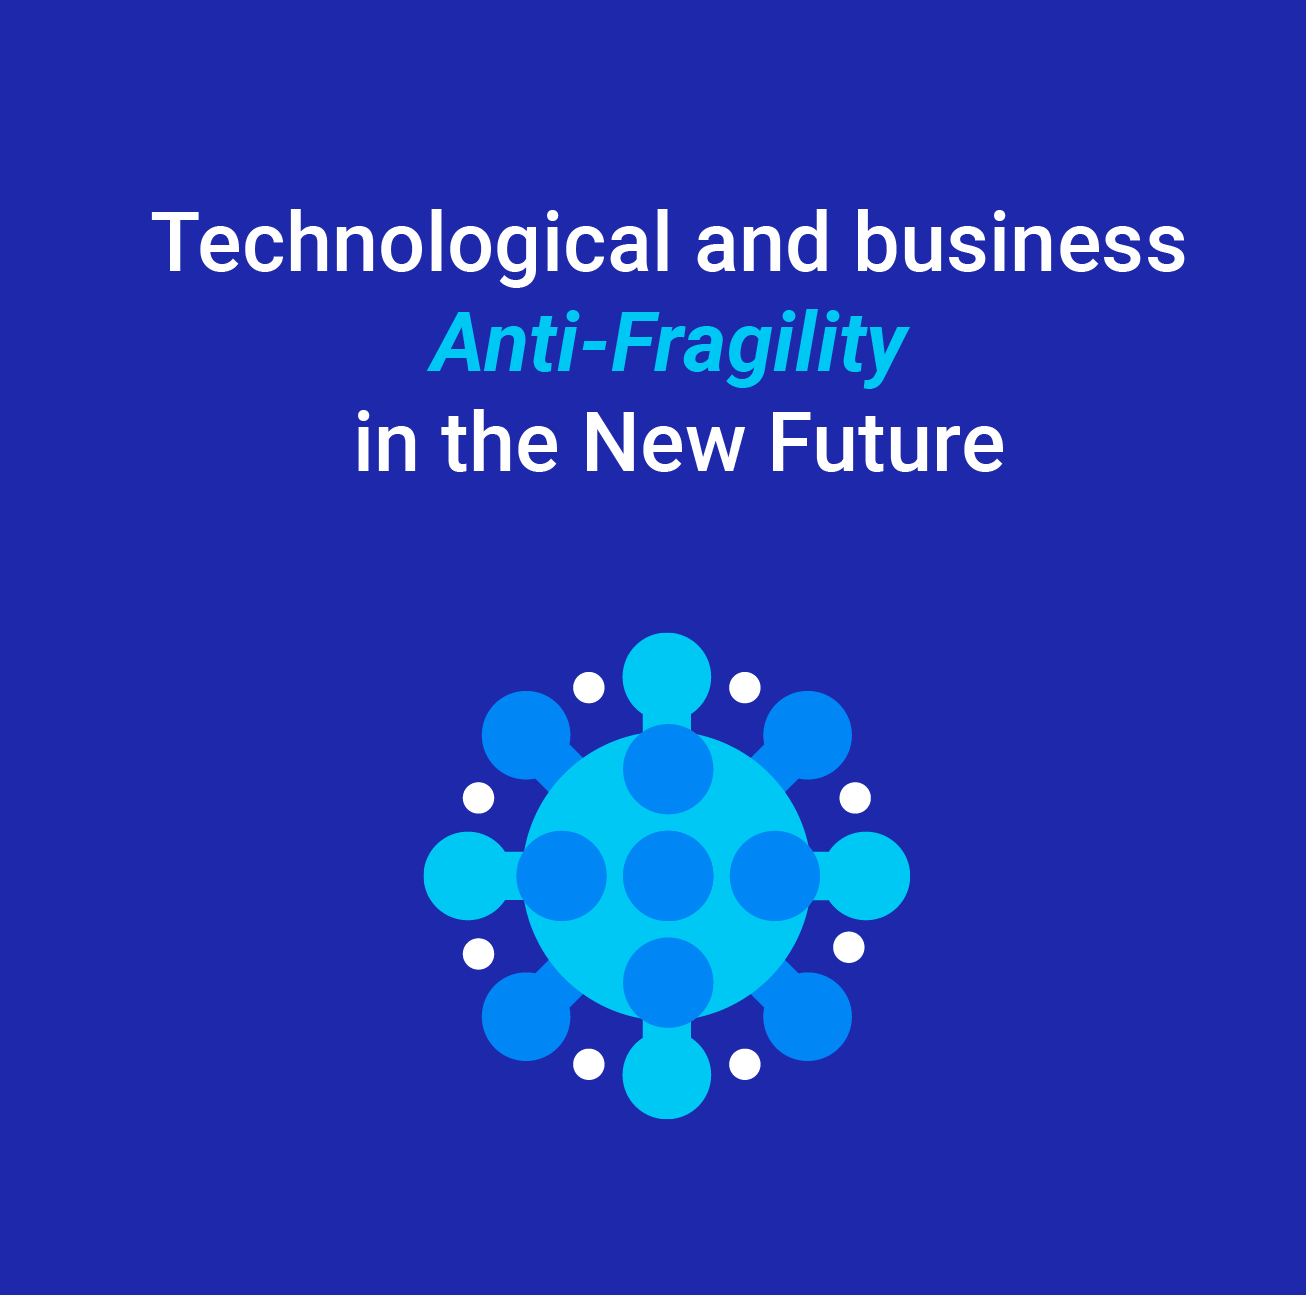 Technological and business Anti-Fragility in the New Future